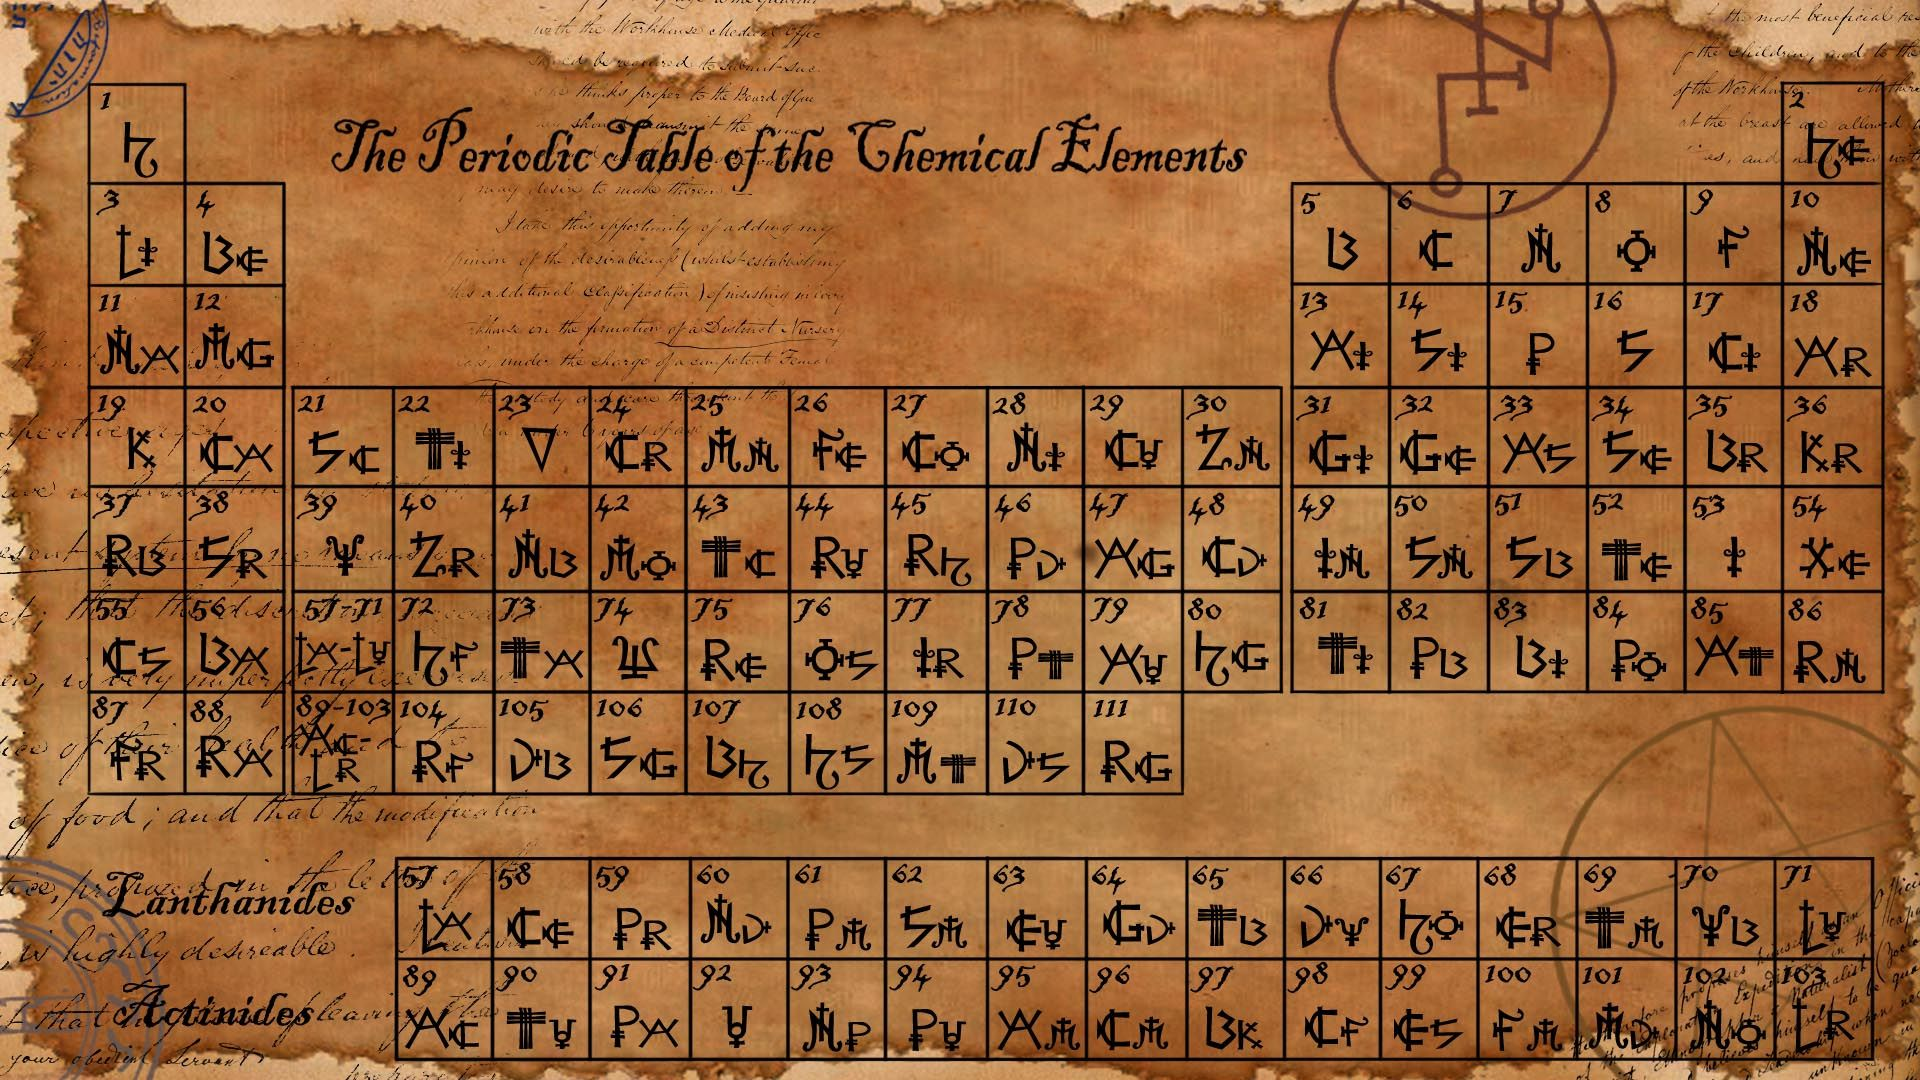 The Periodic Table Of The Elements Periodic Table Of The Elements Periodic Table Chemistry Ultra hd 1080p periodic table hd image